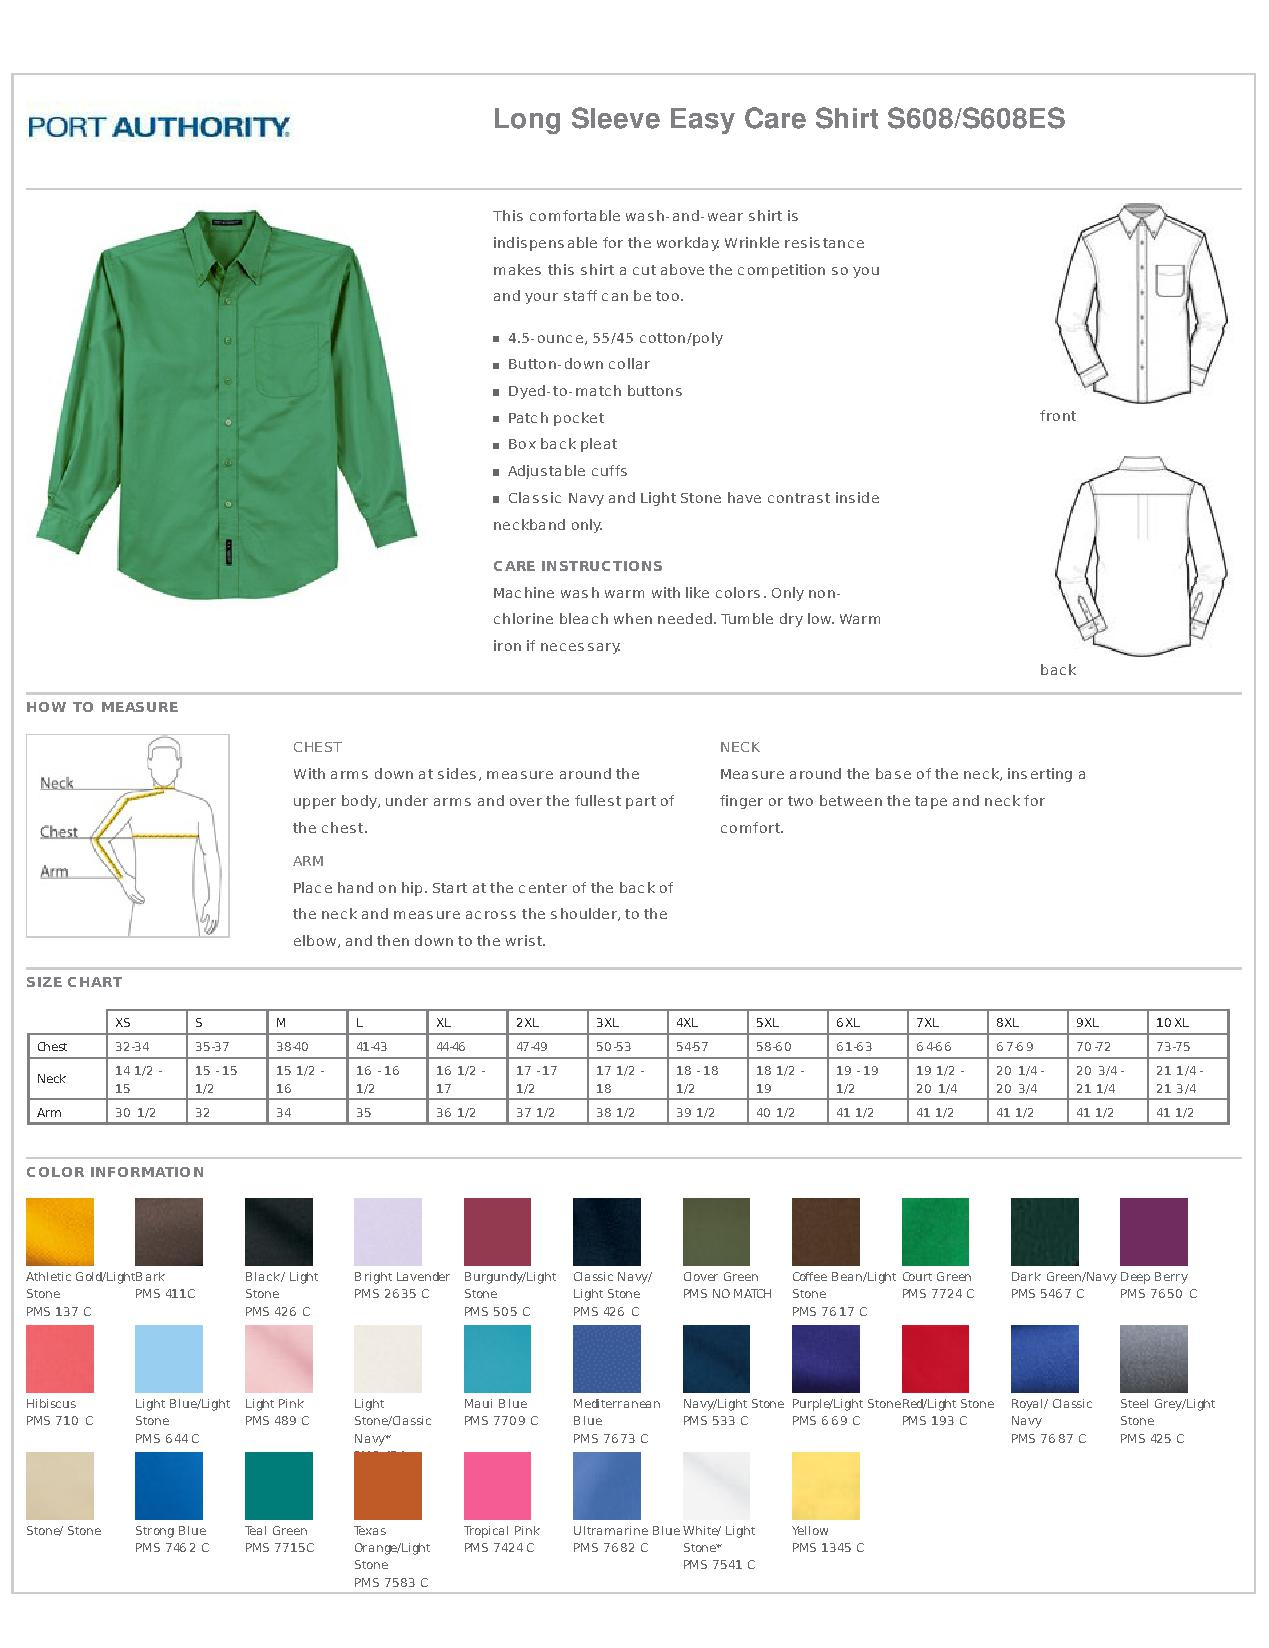 Port authority s608 long sleeve easy care shirt mens woven shirts specs sizing specs nvjuhfo Images